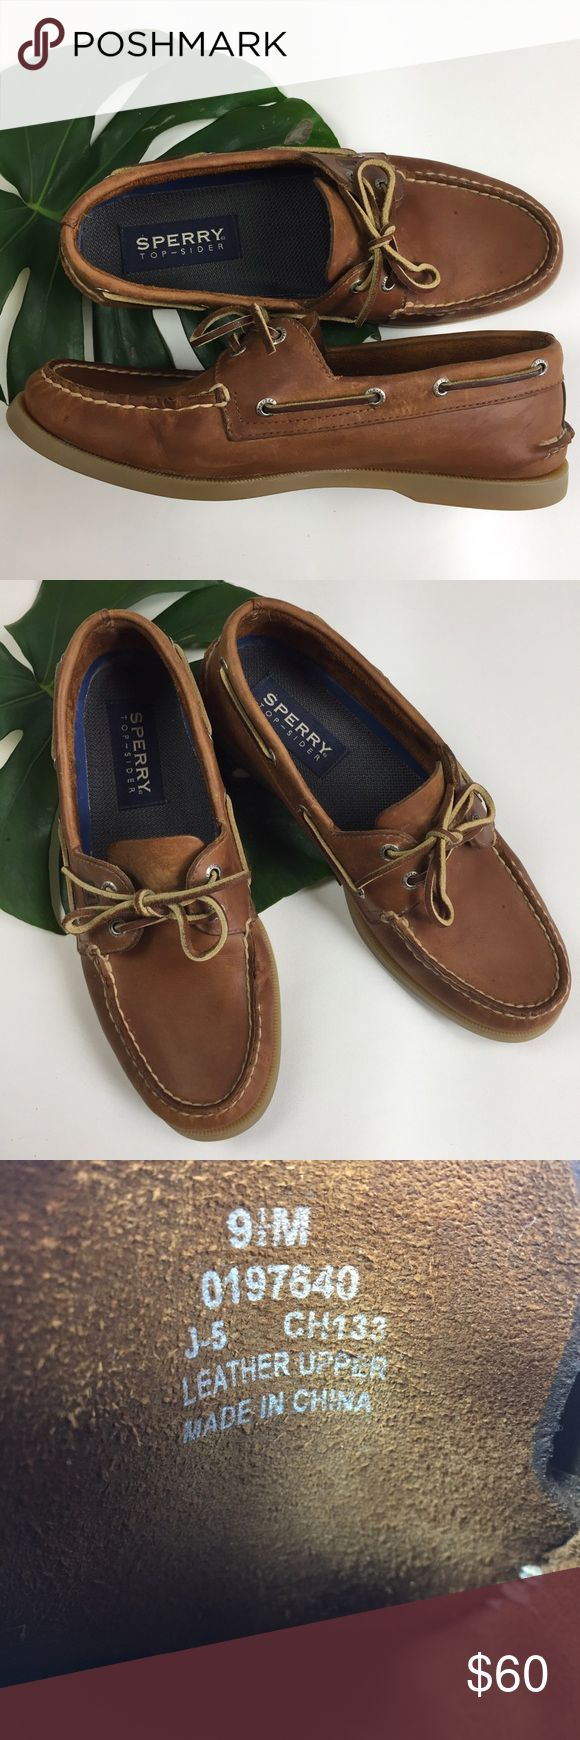 SPERRY // mens 9.5 TOP SIDER boat shoe leather SPERRY // mens 9.5 TOP SIDER boat shoe leather moccasins VERY GOOD Barely used condition Sperry Top-Sider Shoes Boat Shoes